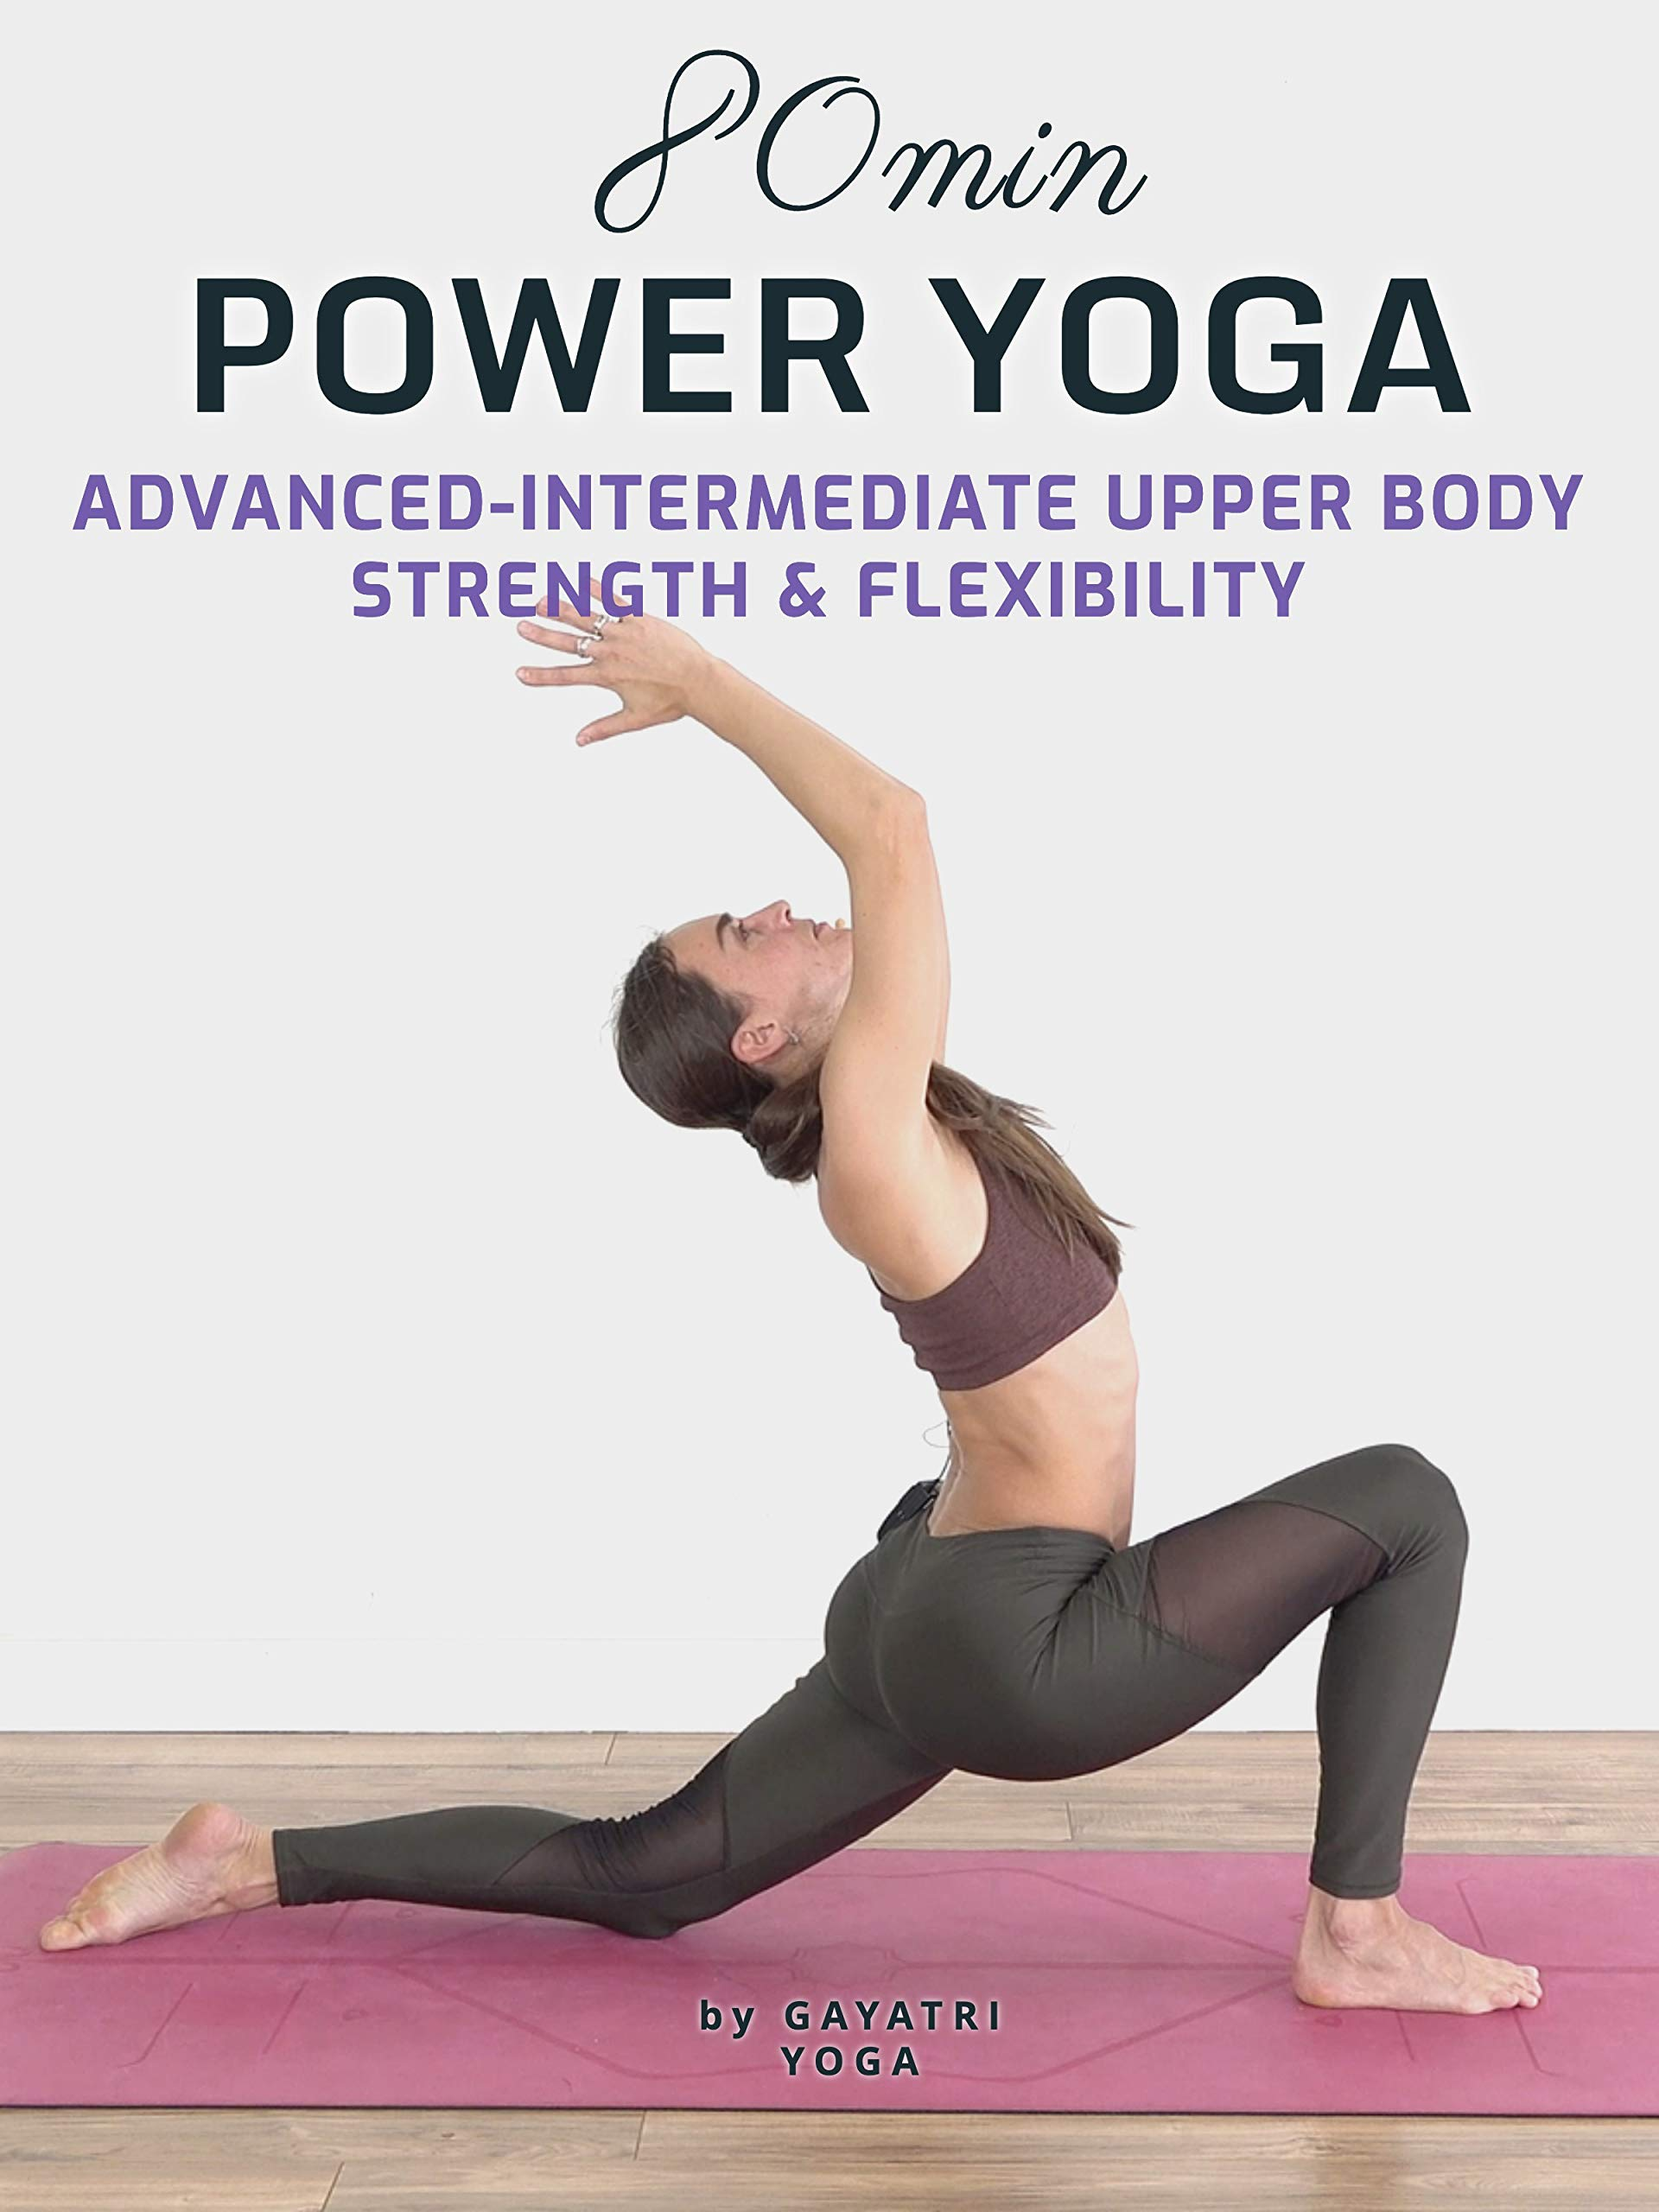 80 Min Power Yoga | Advanced - Intermediate Upper Body Strength & Flexibility - Gayatri Yoga